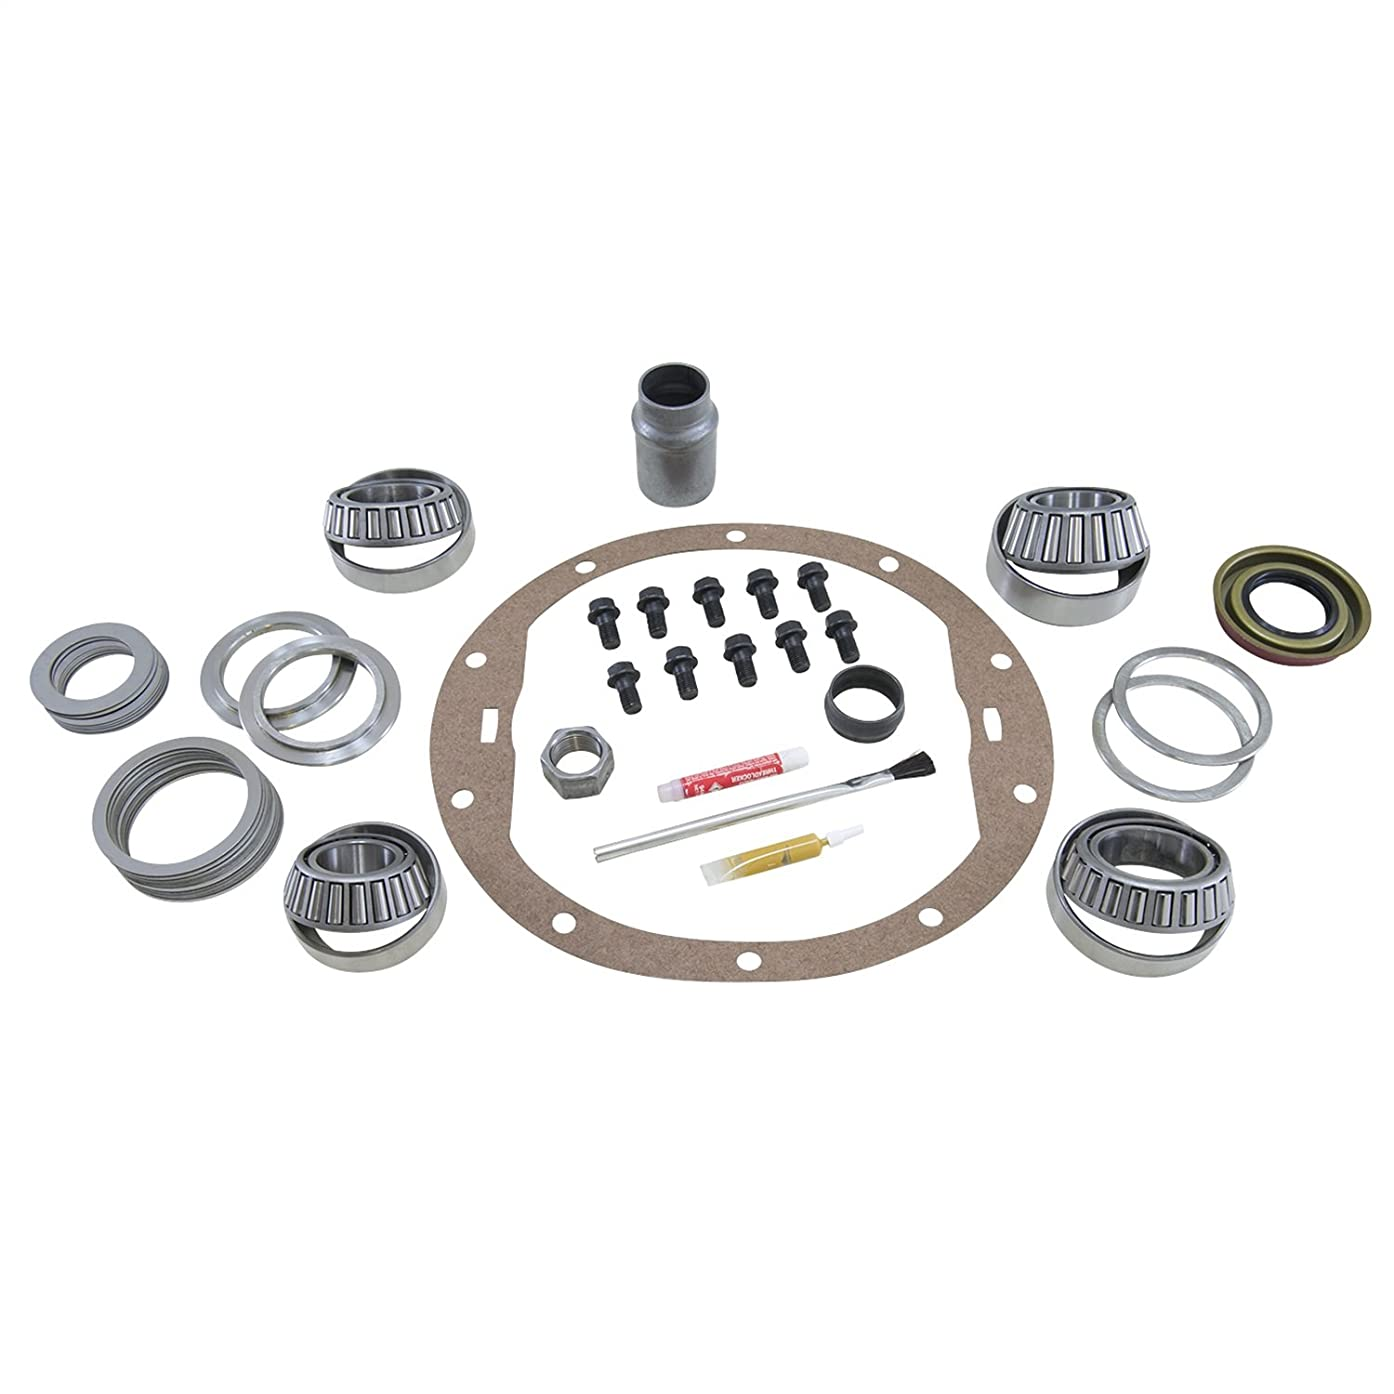 USA Standard Gear (ZK GM8.0) Master Overhaul Kit for GM 8 Differential